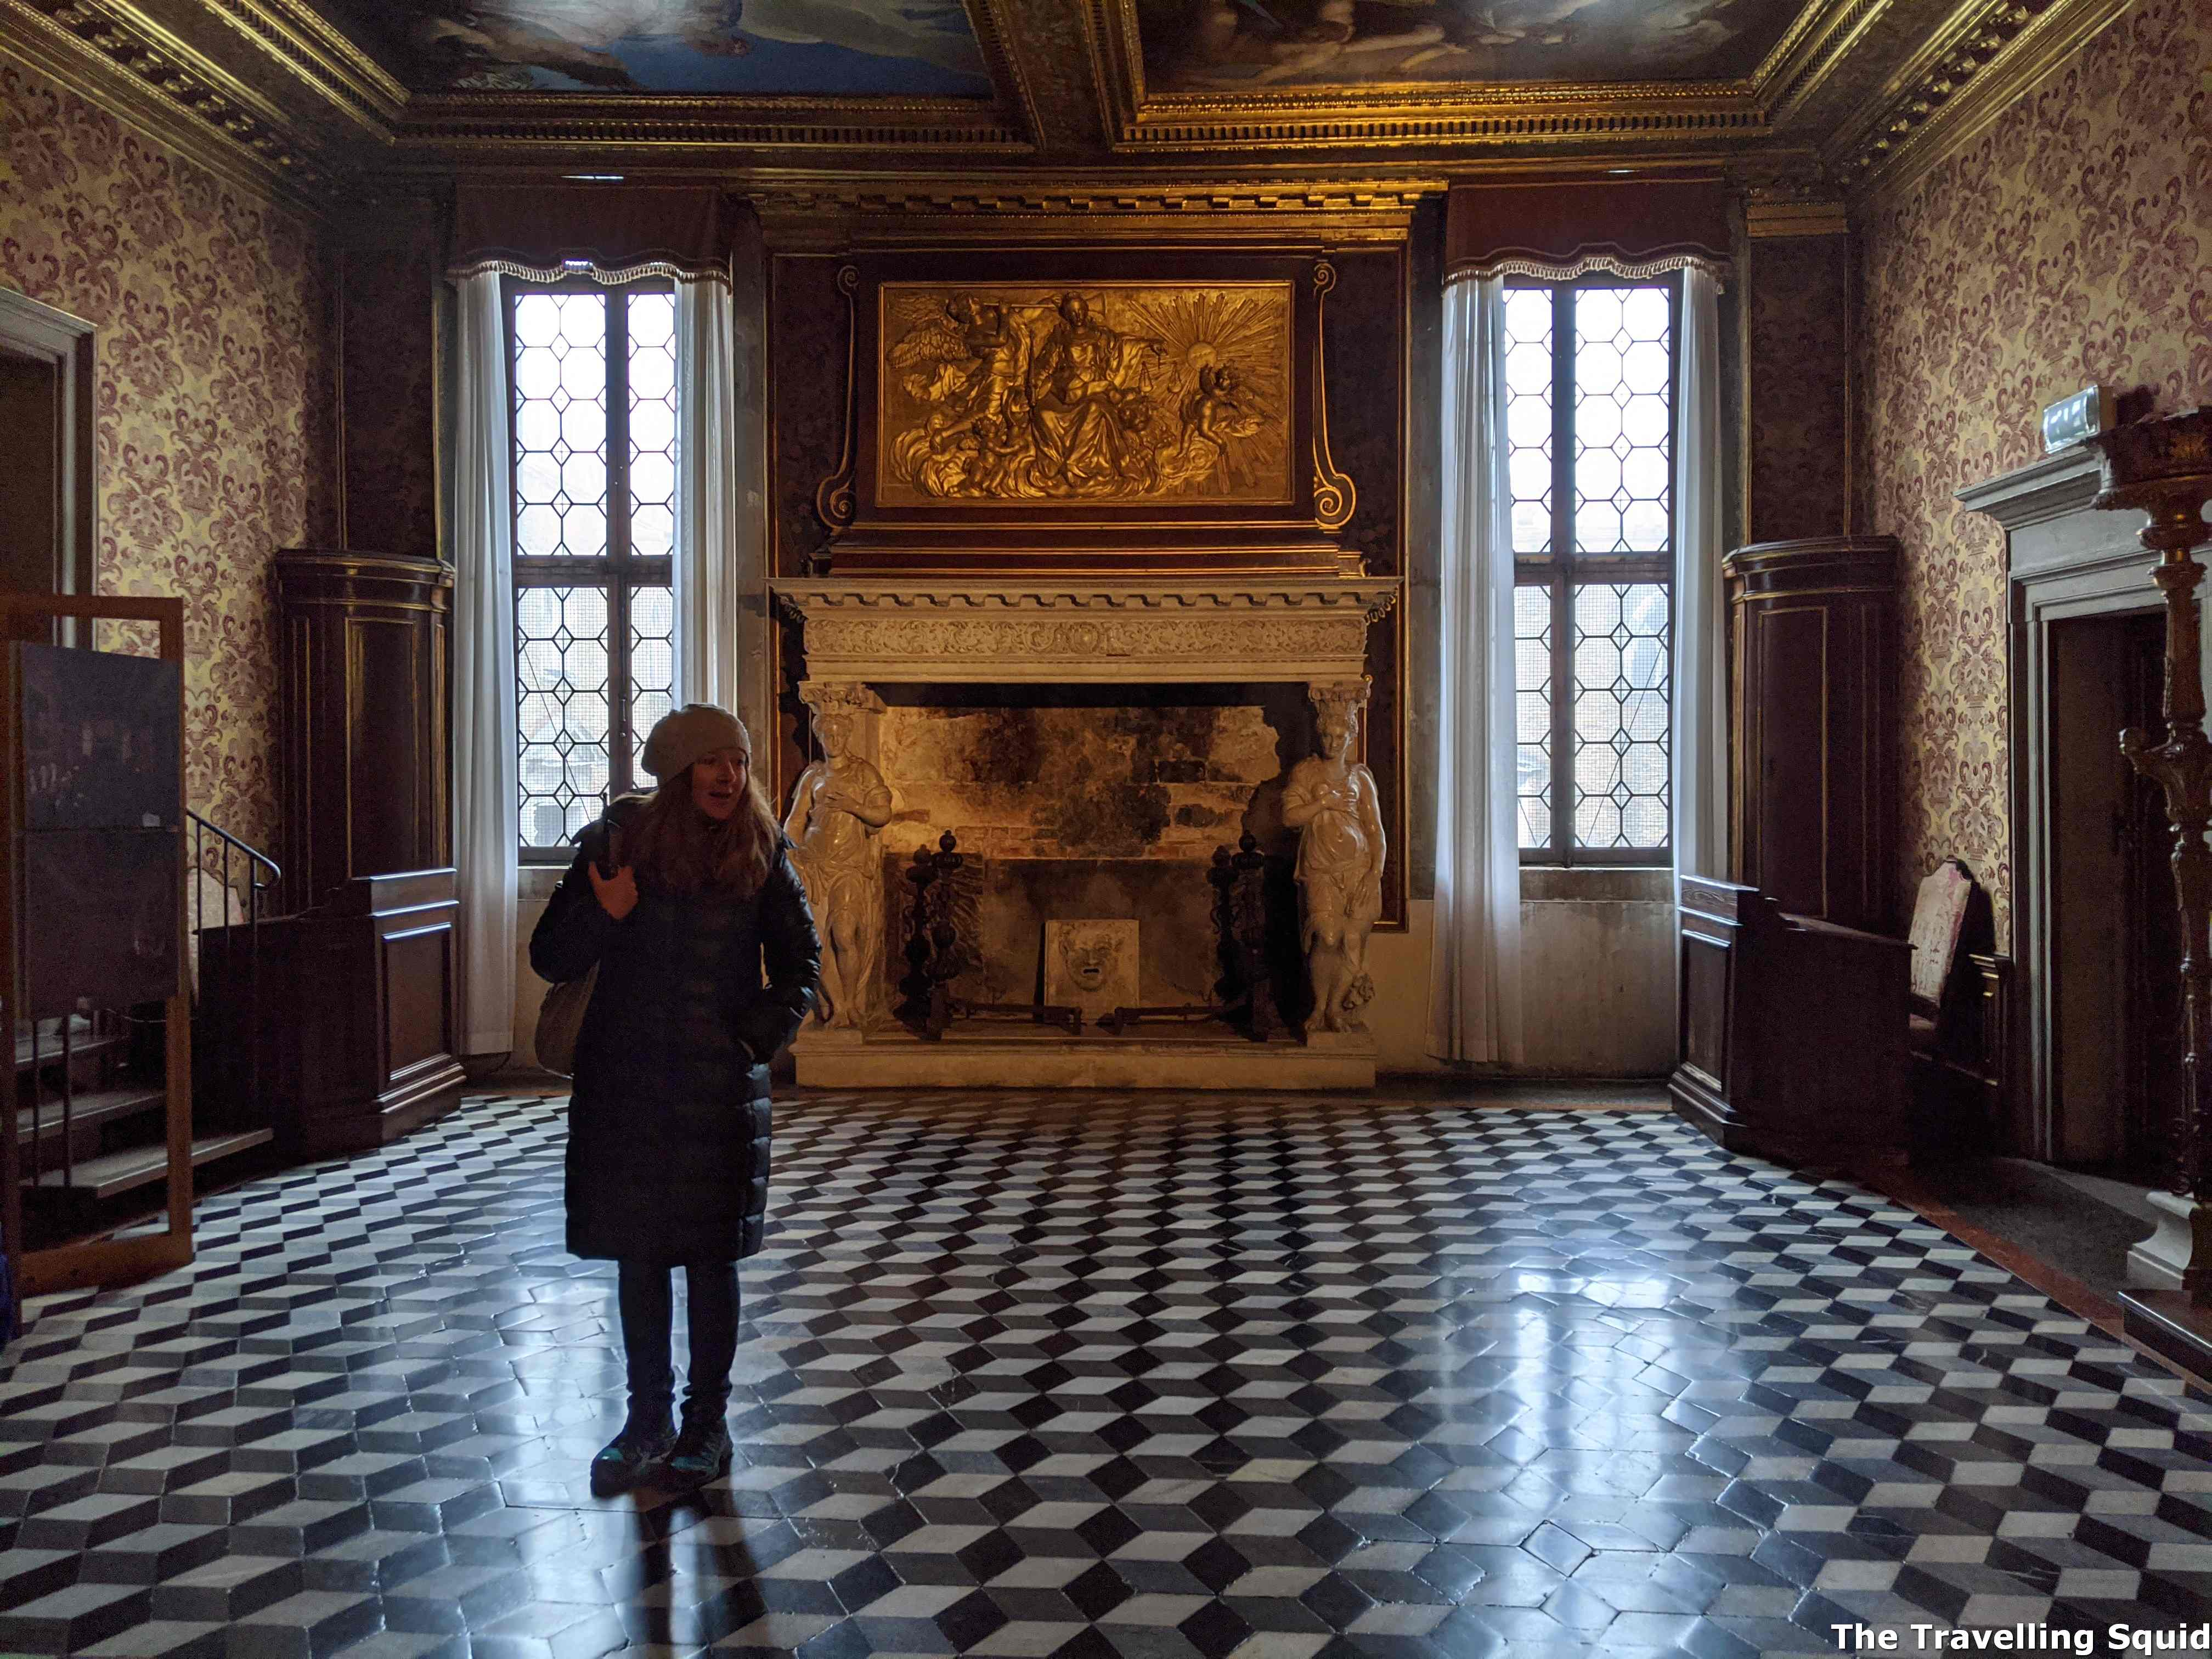 Secret Itineraries tour of the Doges Palace in Venice guide